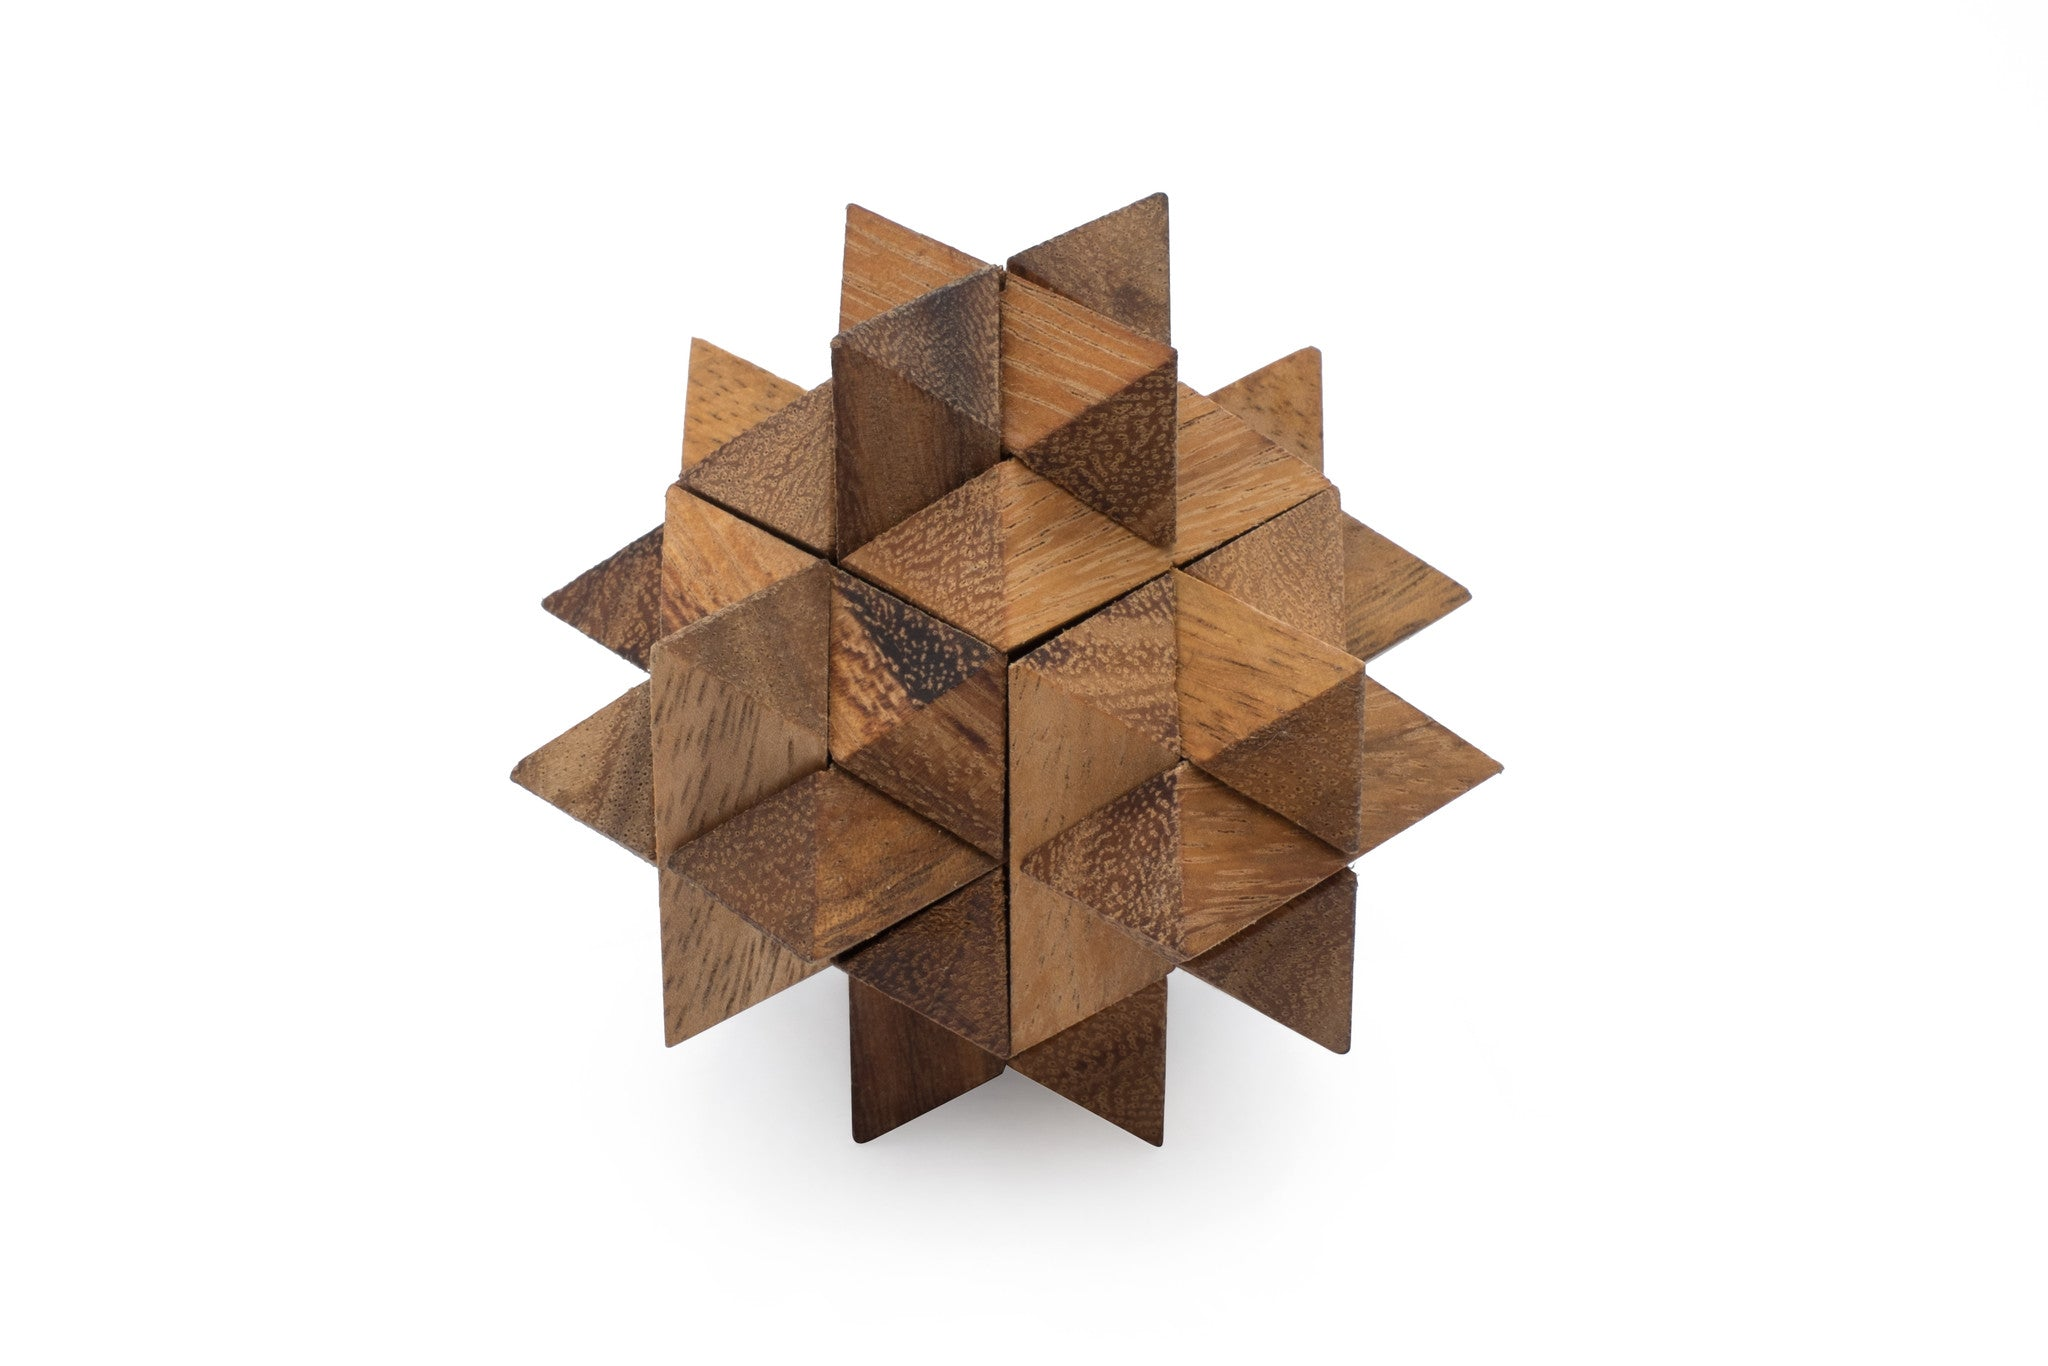 Asterisk 3D Wooden Puzzle With Free Worldwide-4320